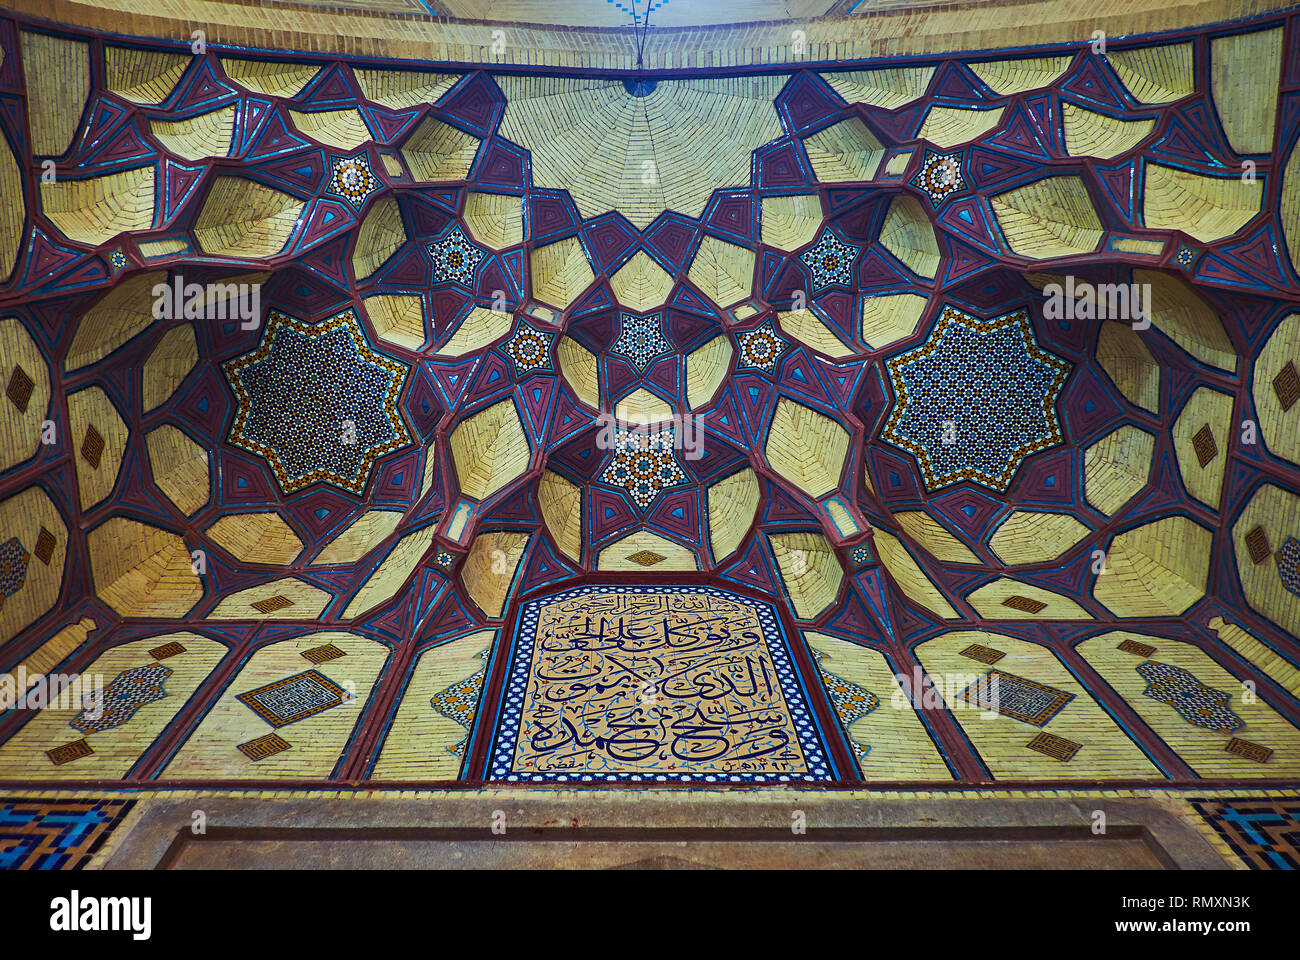 ISFAHAN, IRAN - OCTOBER 21, 2017: The arch of the portal (iwan) of Honar Bazaar is decorated with brick muqarnas and covered with bright stellar patte - Stock Image